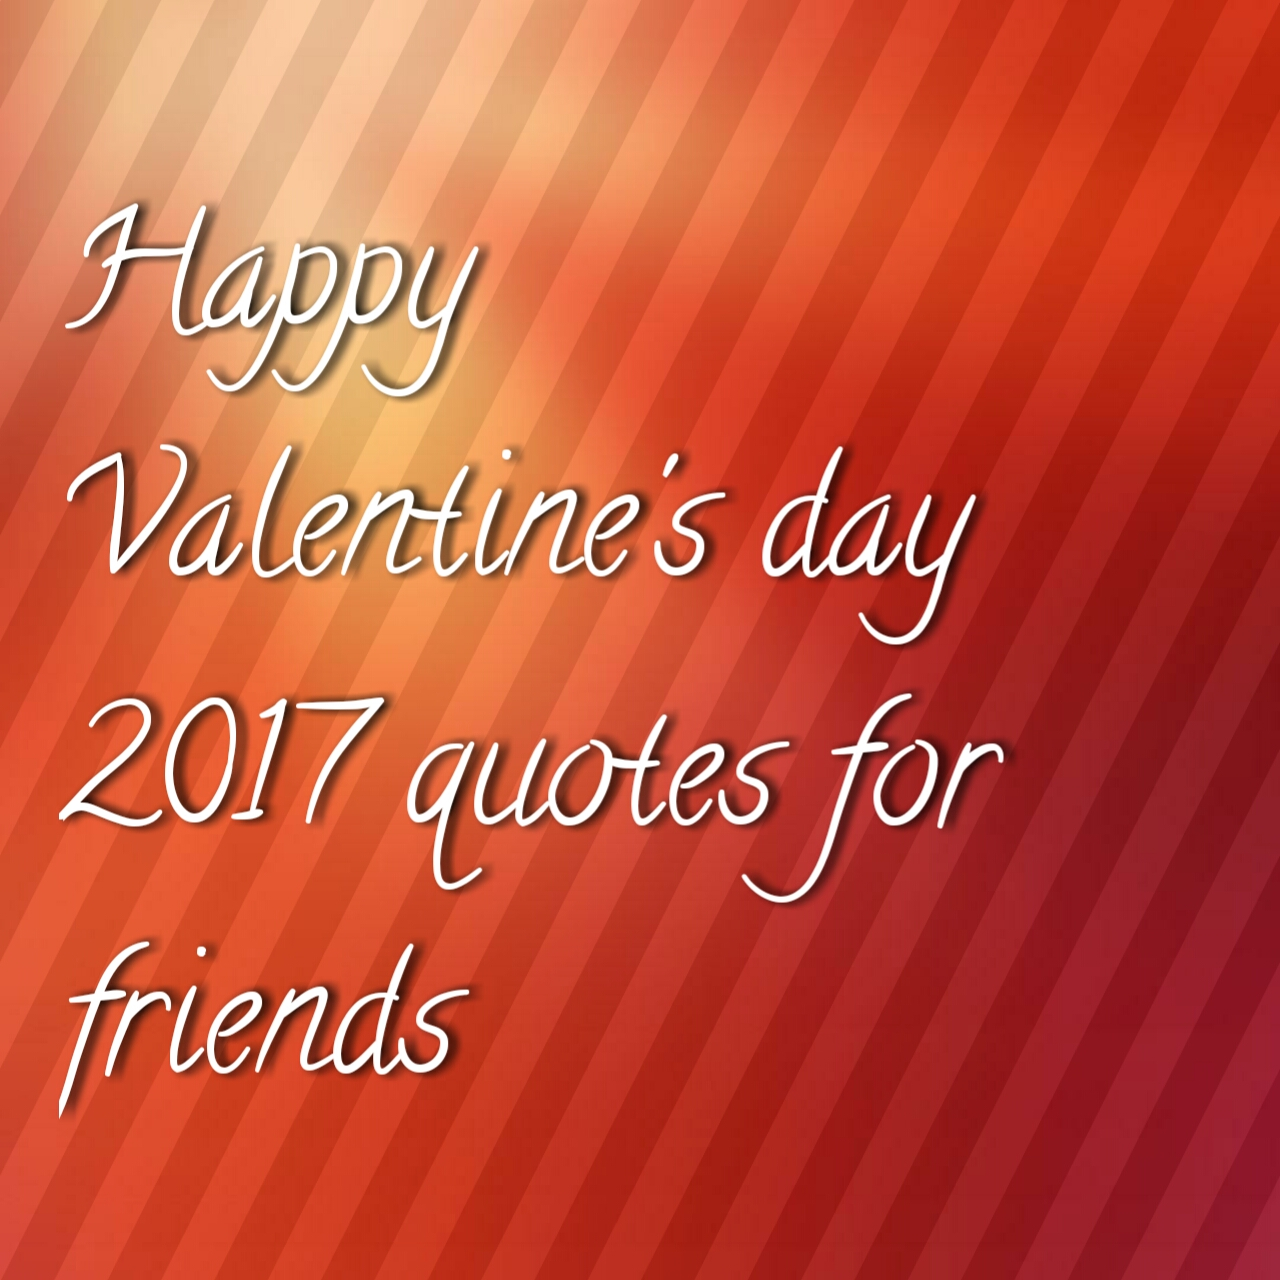 Valentines Quotes For Friends Happy Valentines Day Quotes For Friends2017 Valentines Day